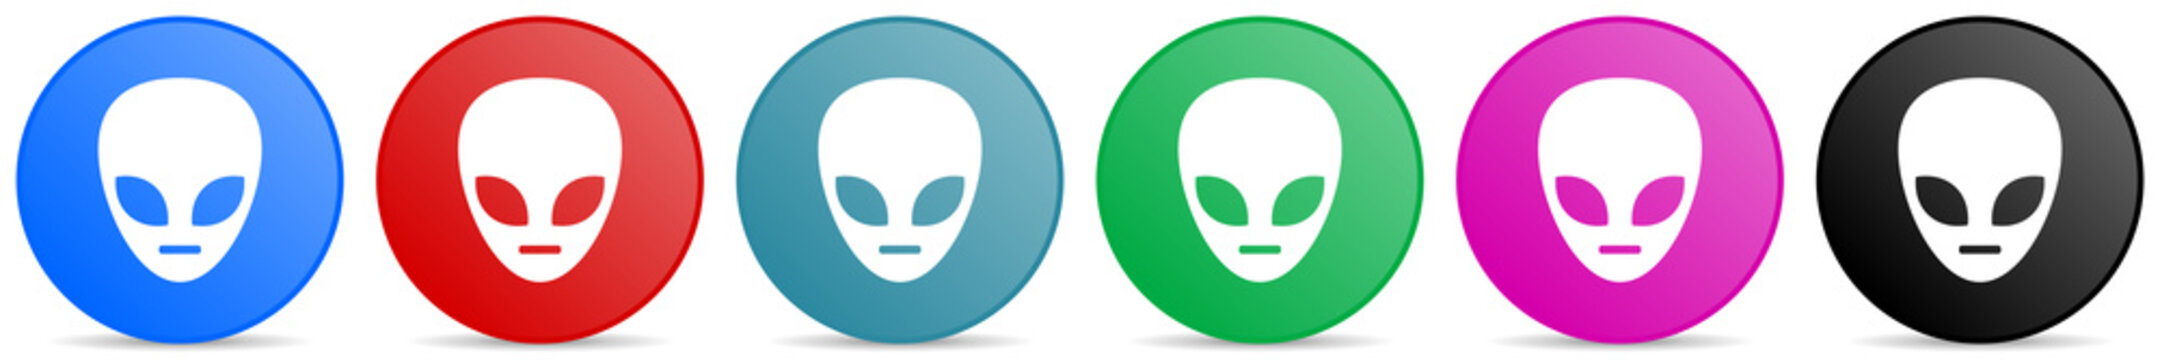 Alien face vector icons, set of circle gradient buttons in 6 colors options for webdesign and mobile applications